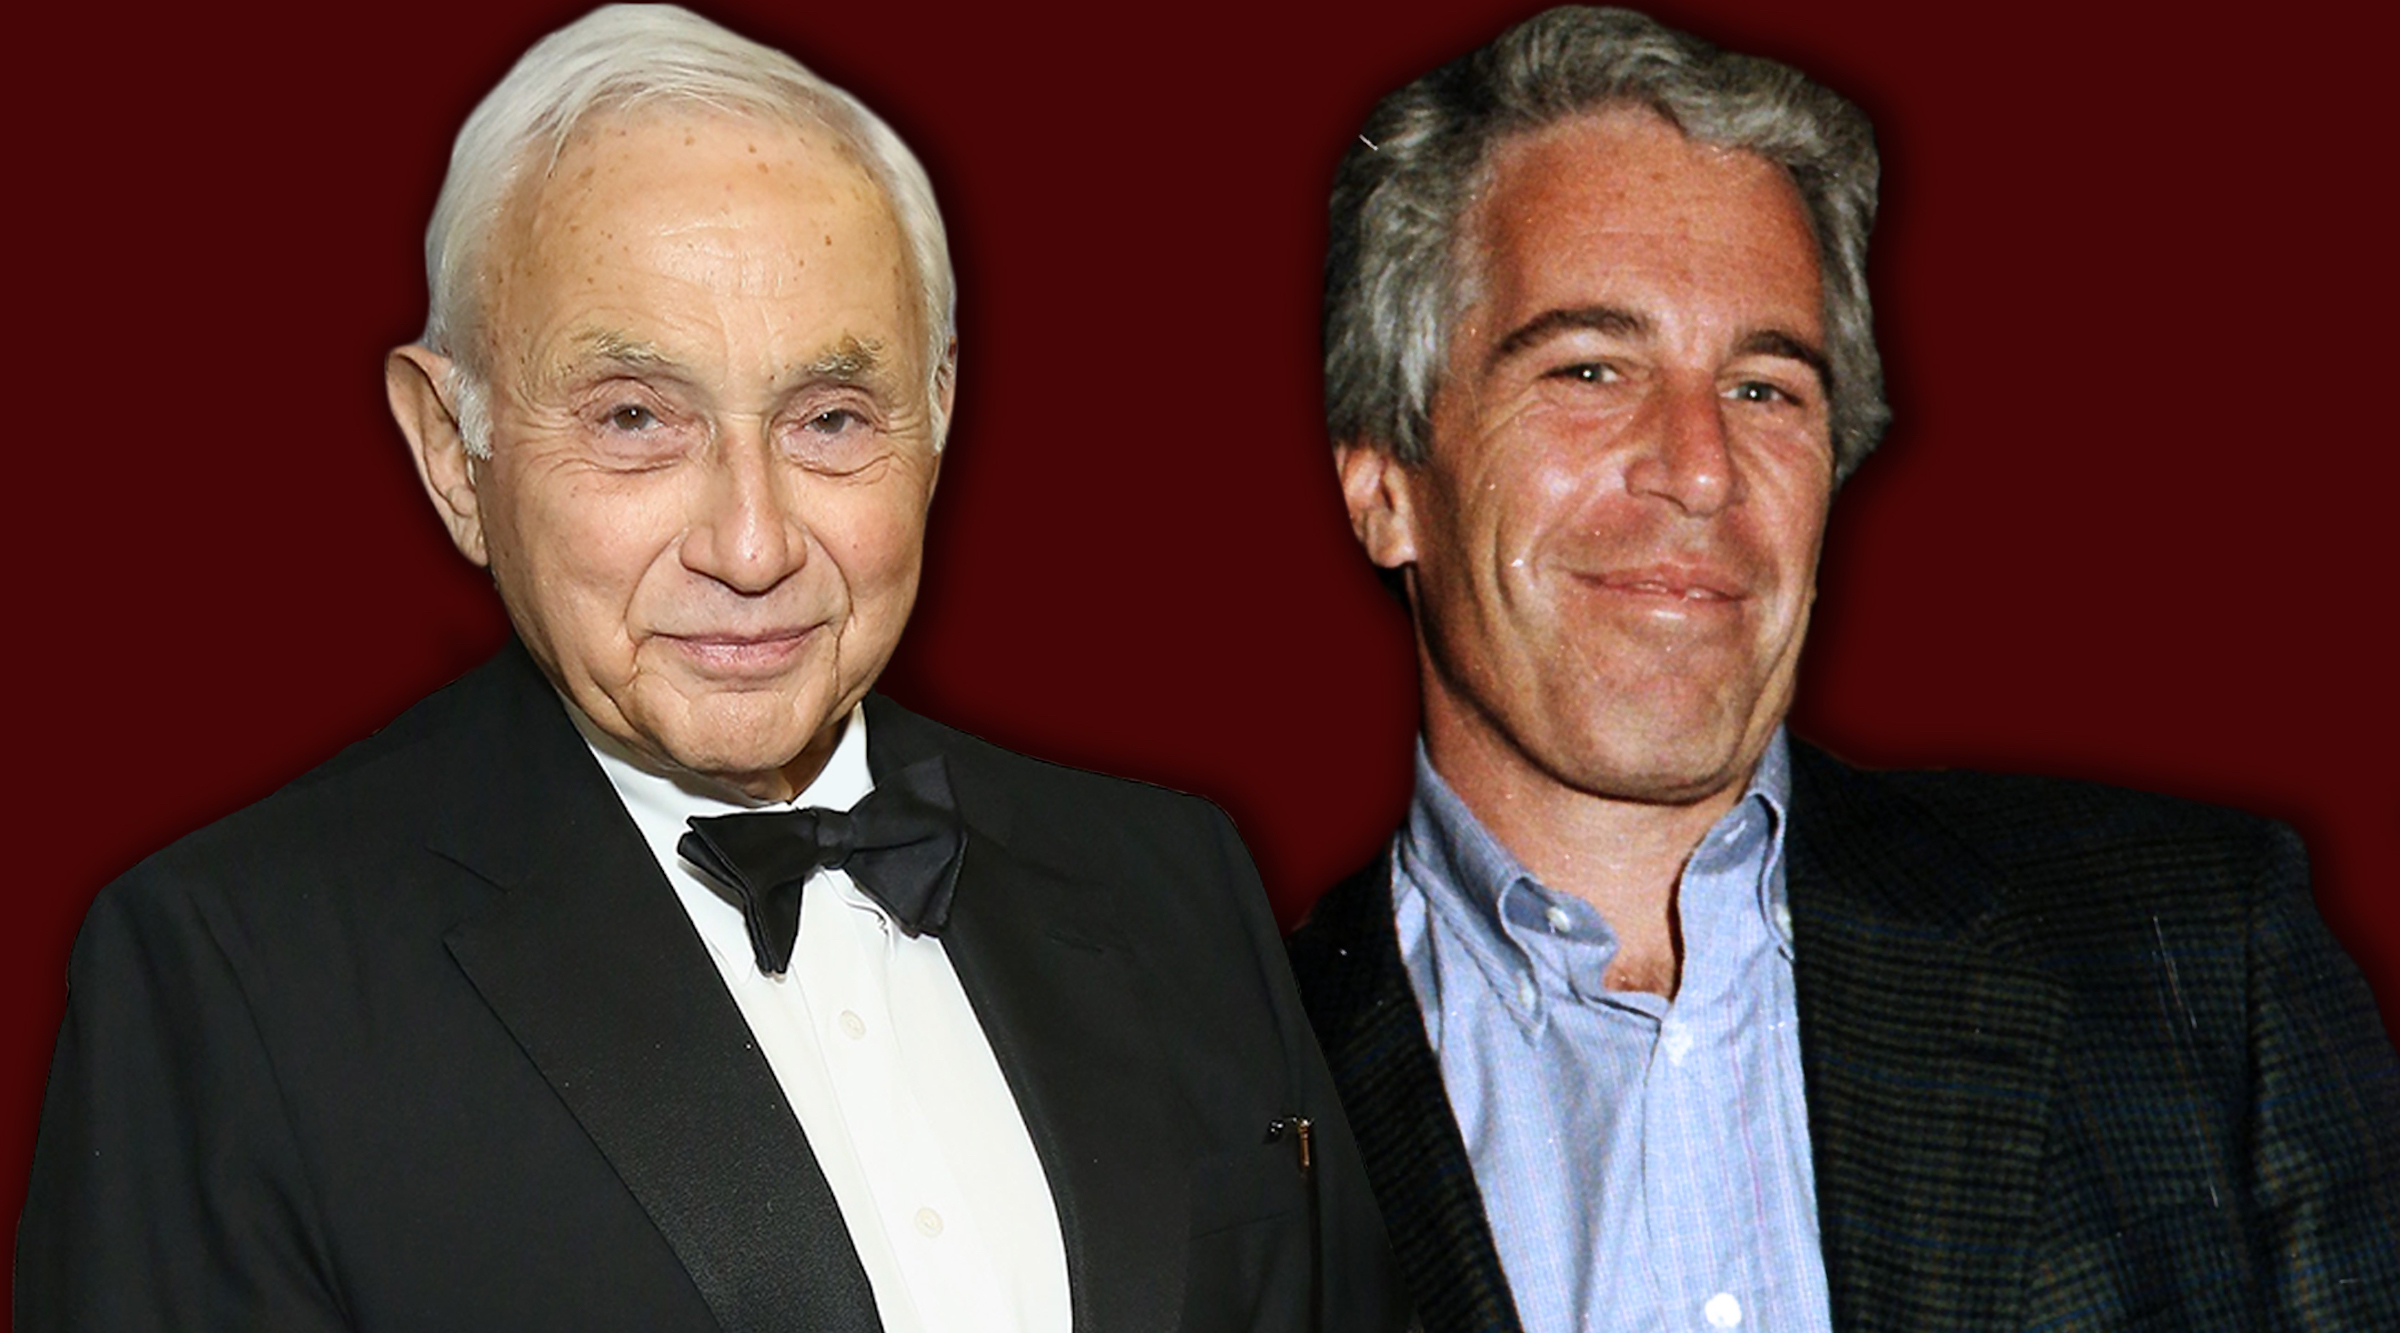 Alan Dershowitz and Jeffrey Epstein: Is Victoria's Secret part of it all too? – Film Daily